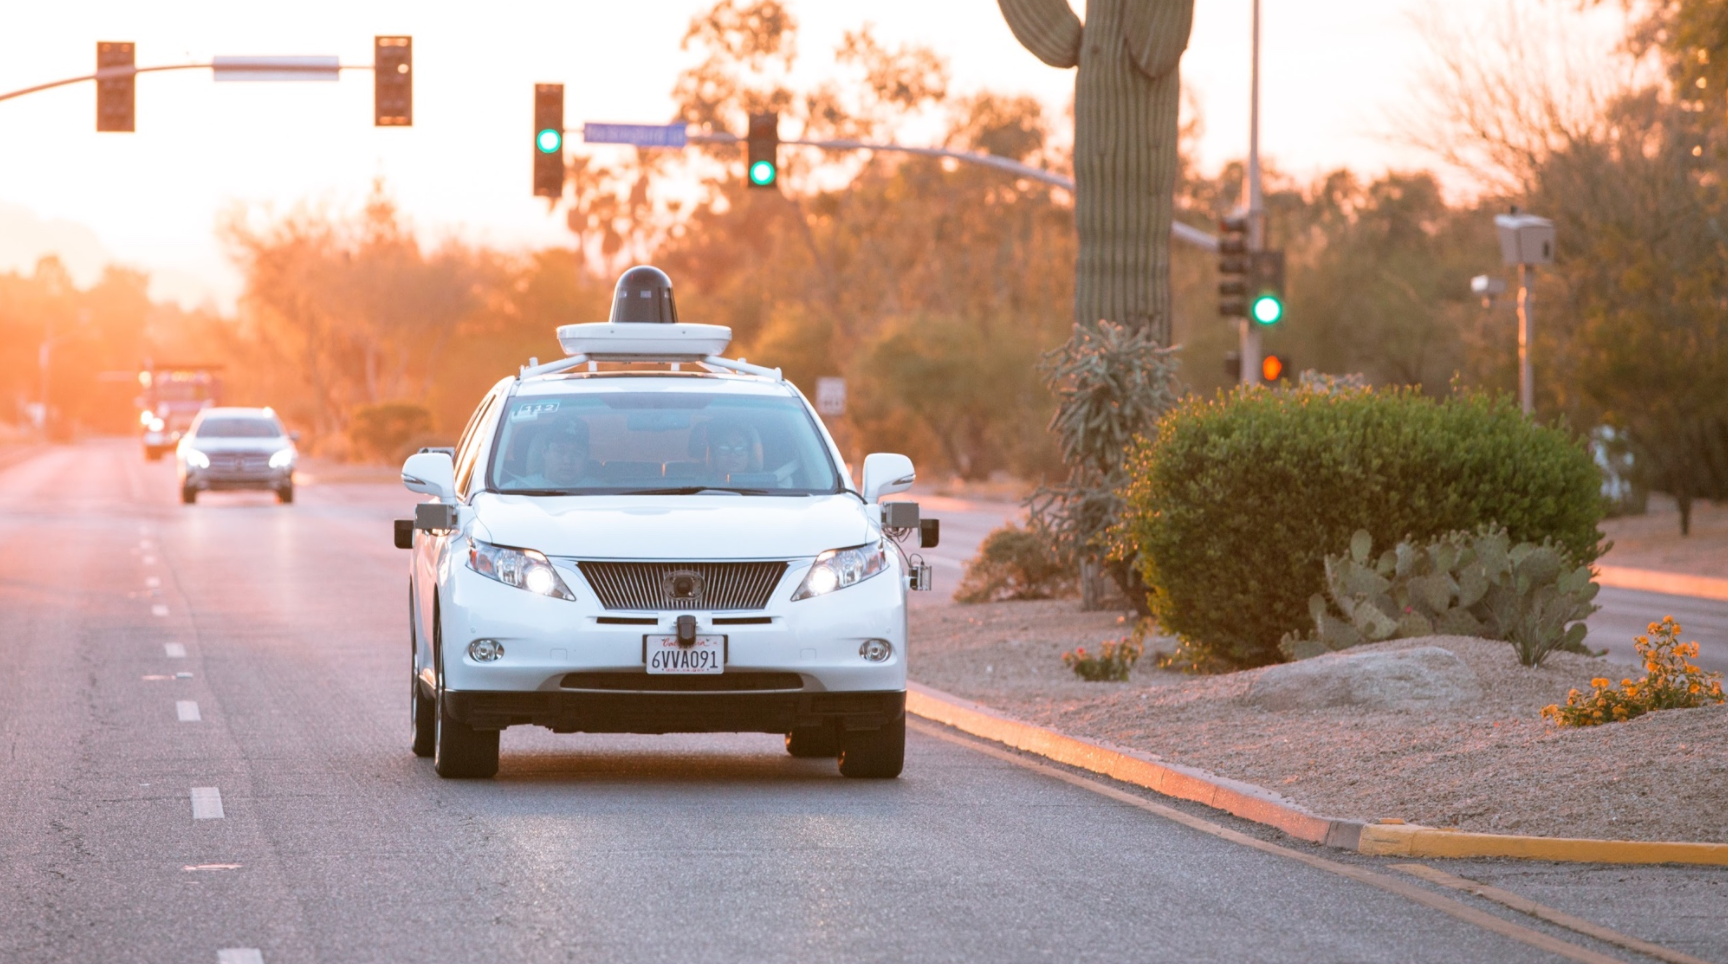 Google 's Legal Battle With Uber Over Autonomous Cars Heating Up